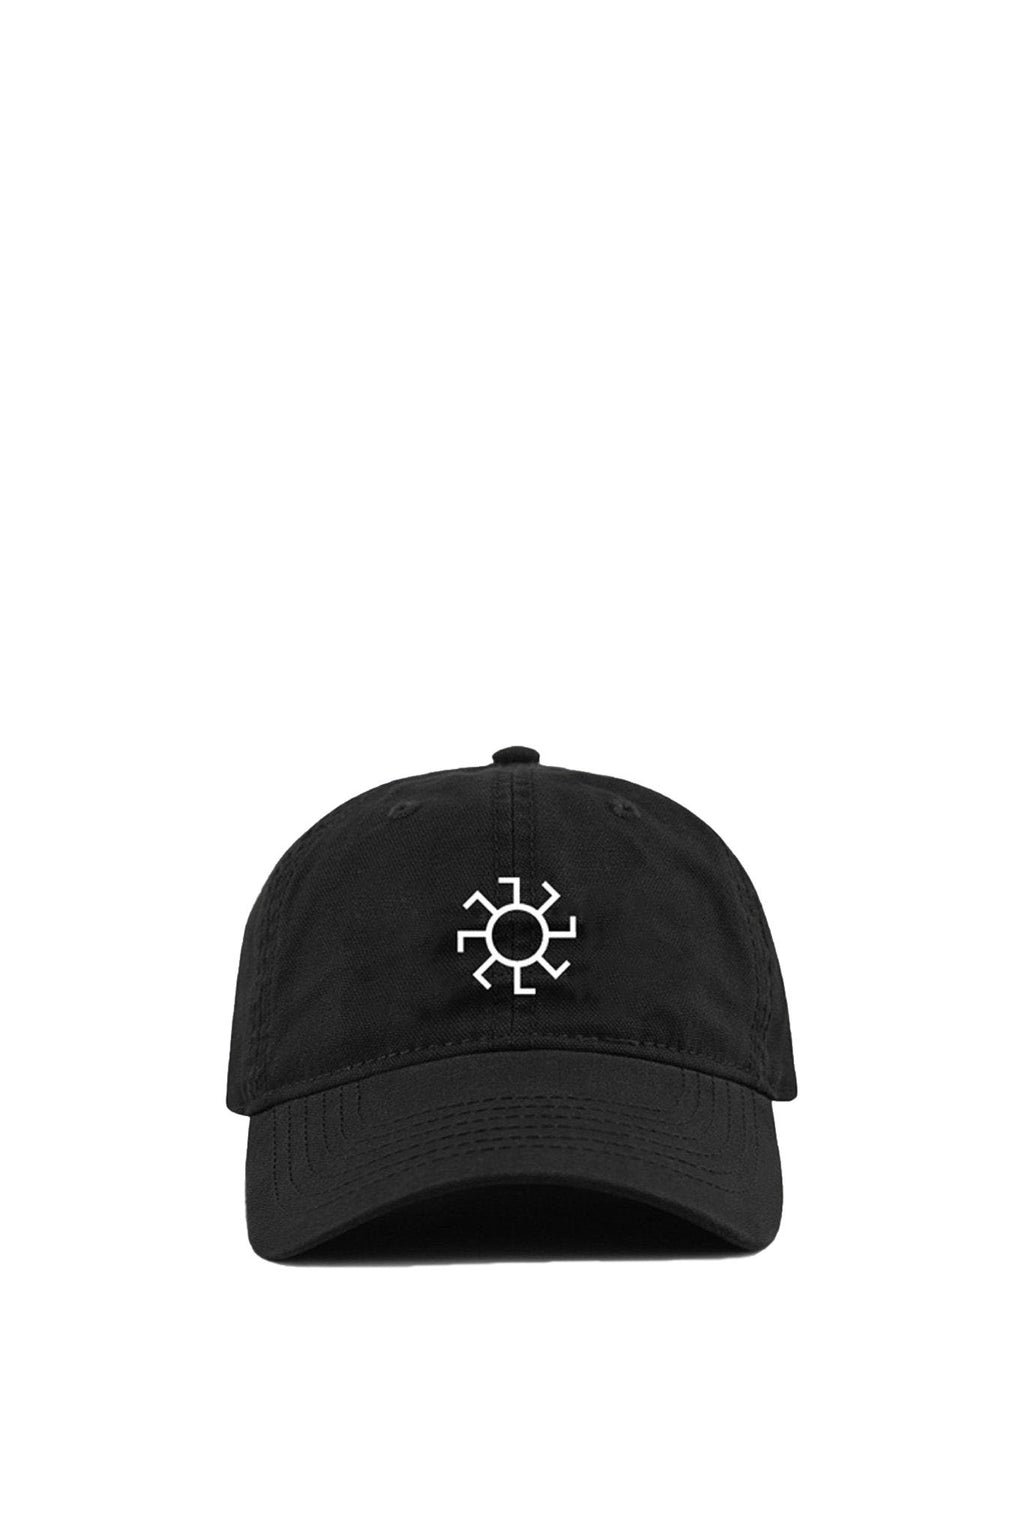 Black & White Sunwheel Embroidered Hat